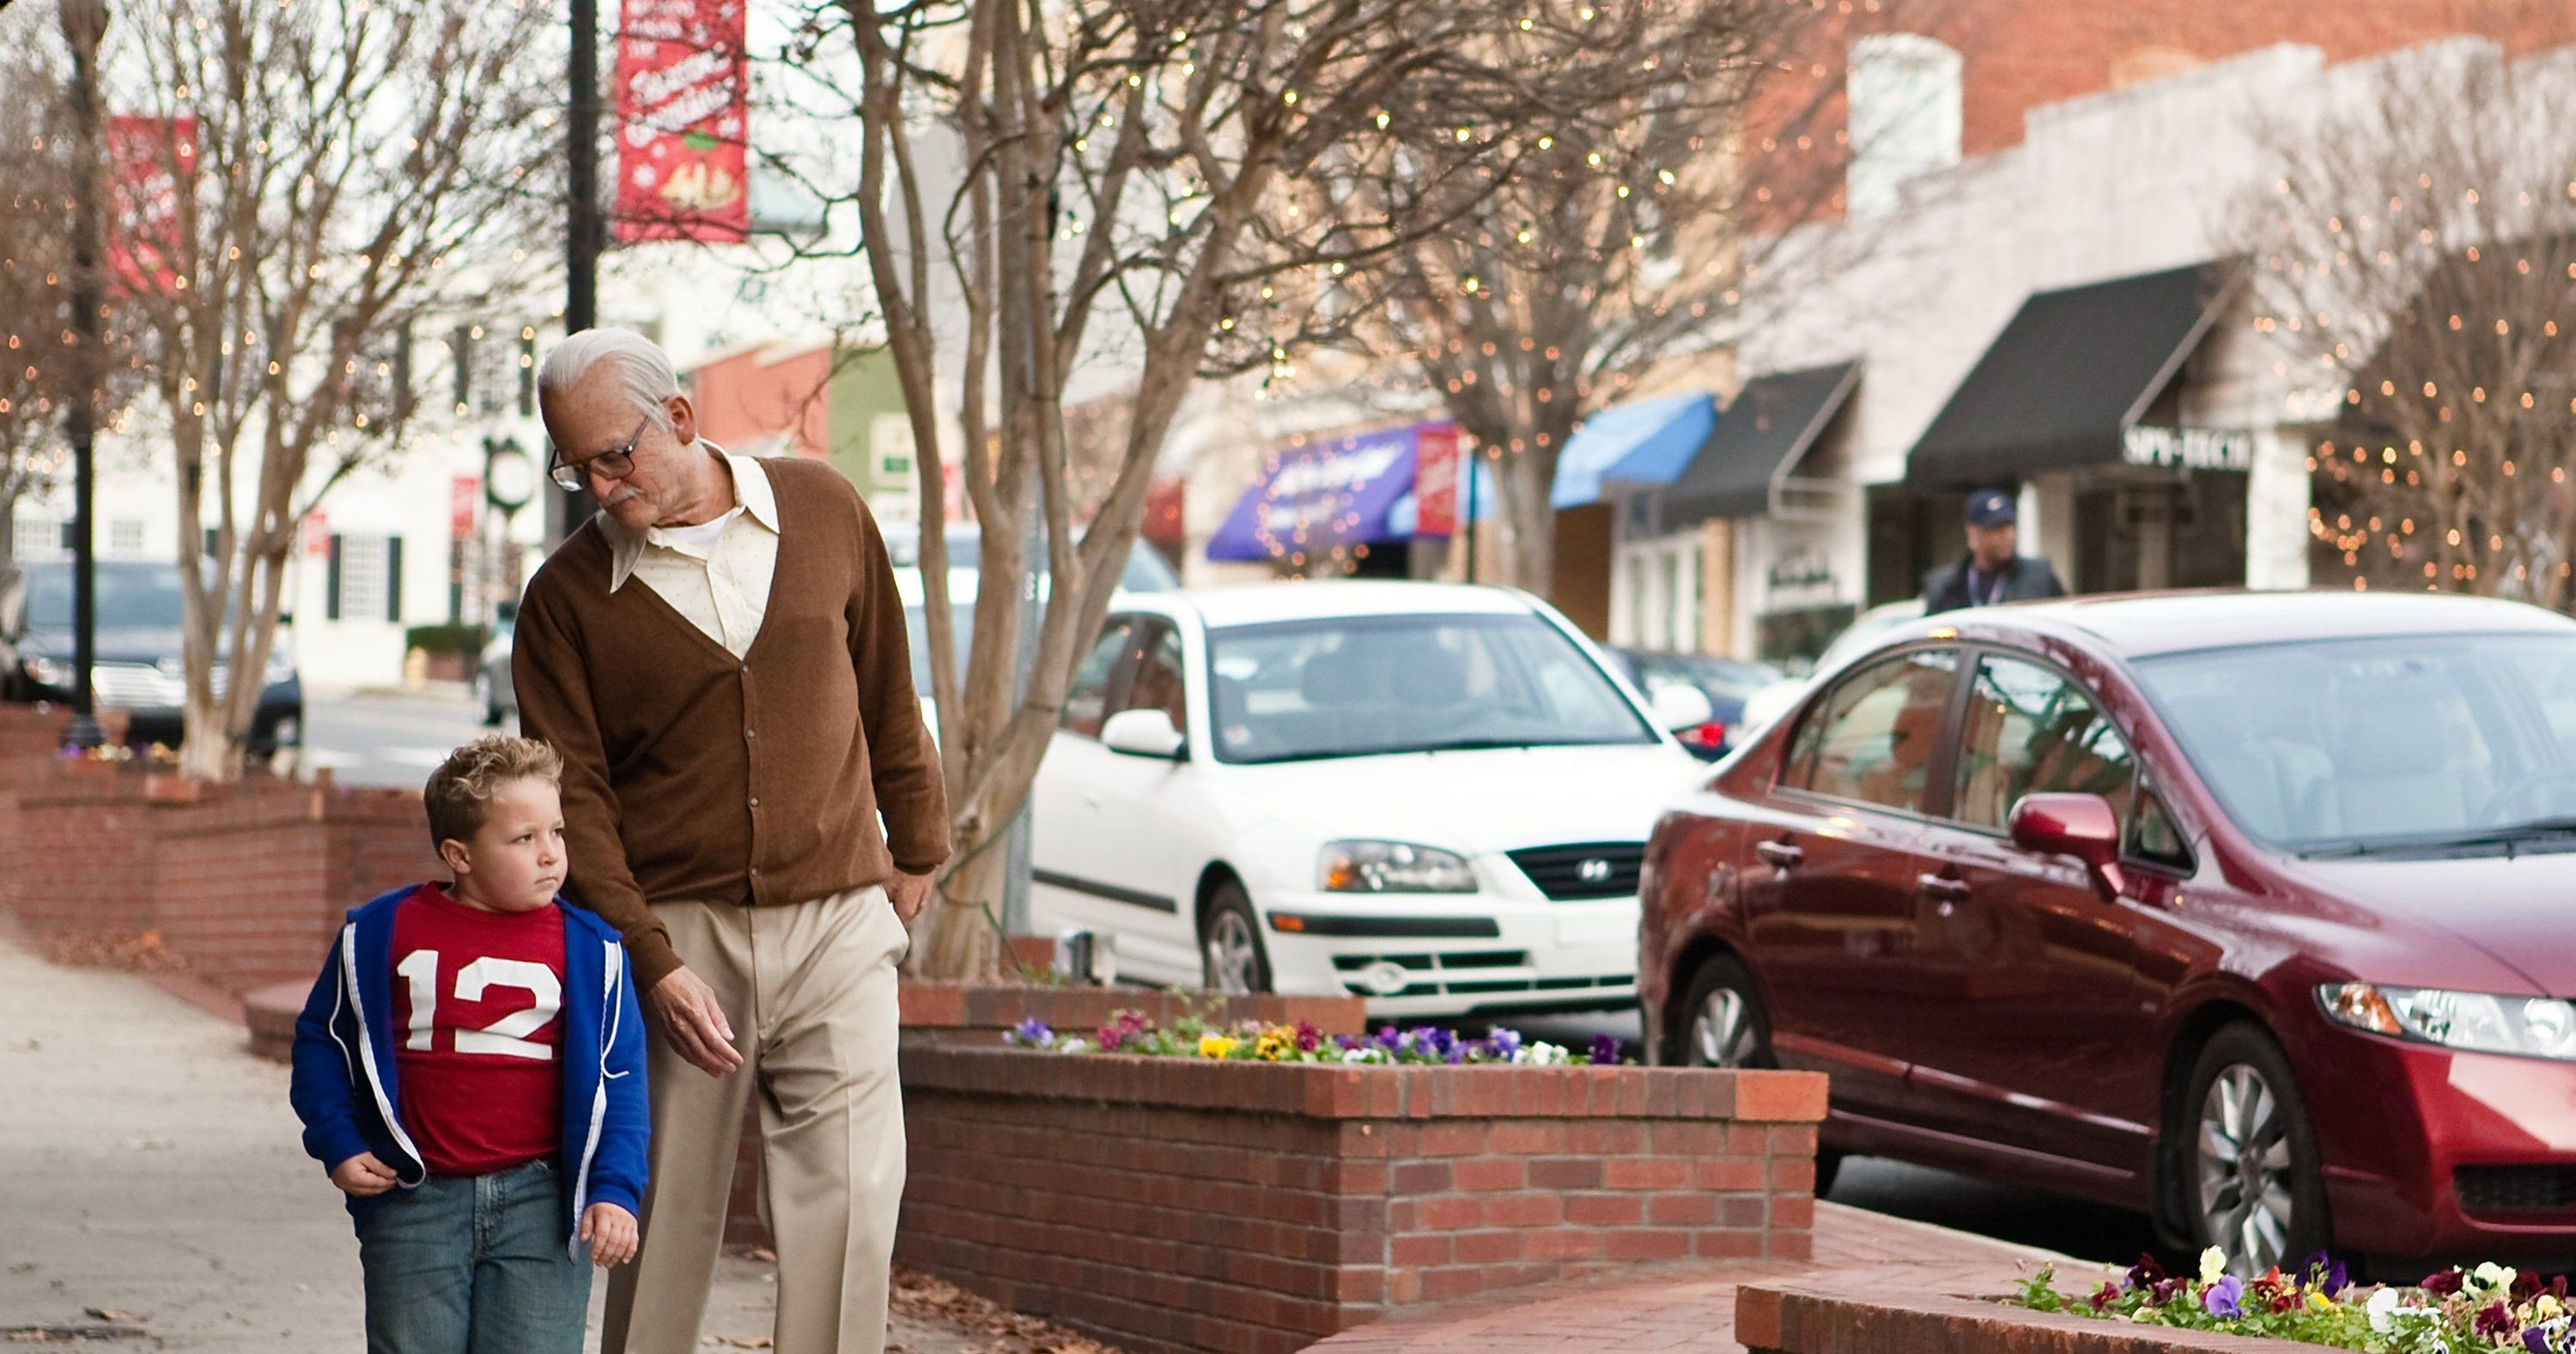 An image from Bad Grandpa